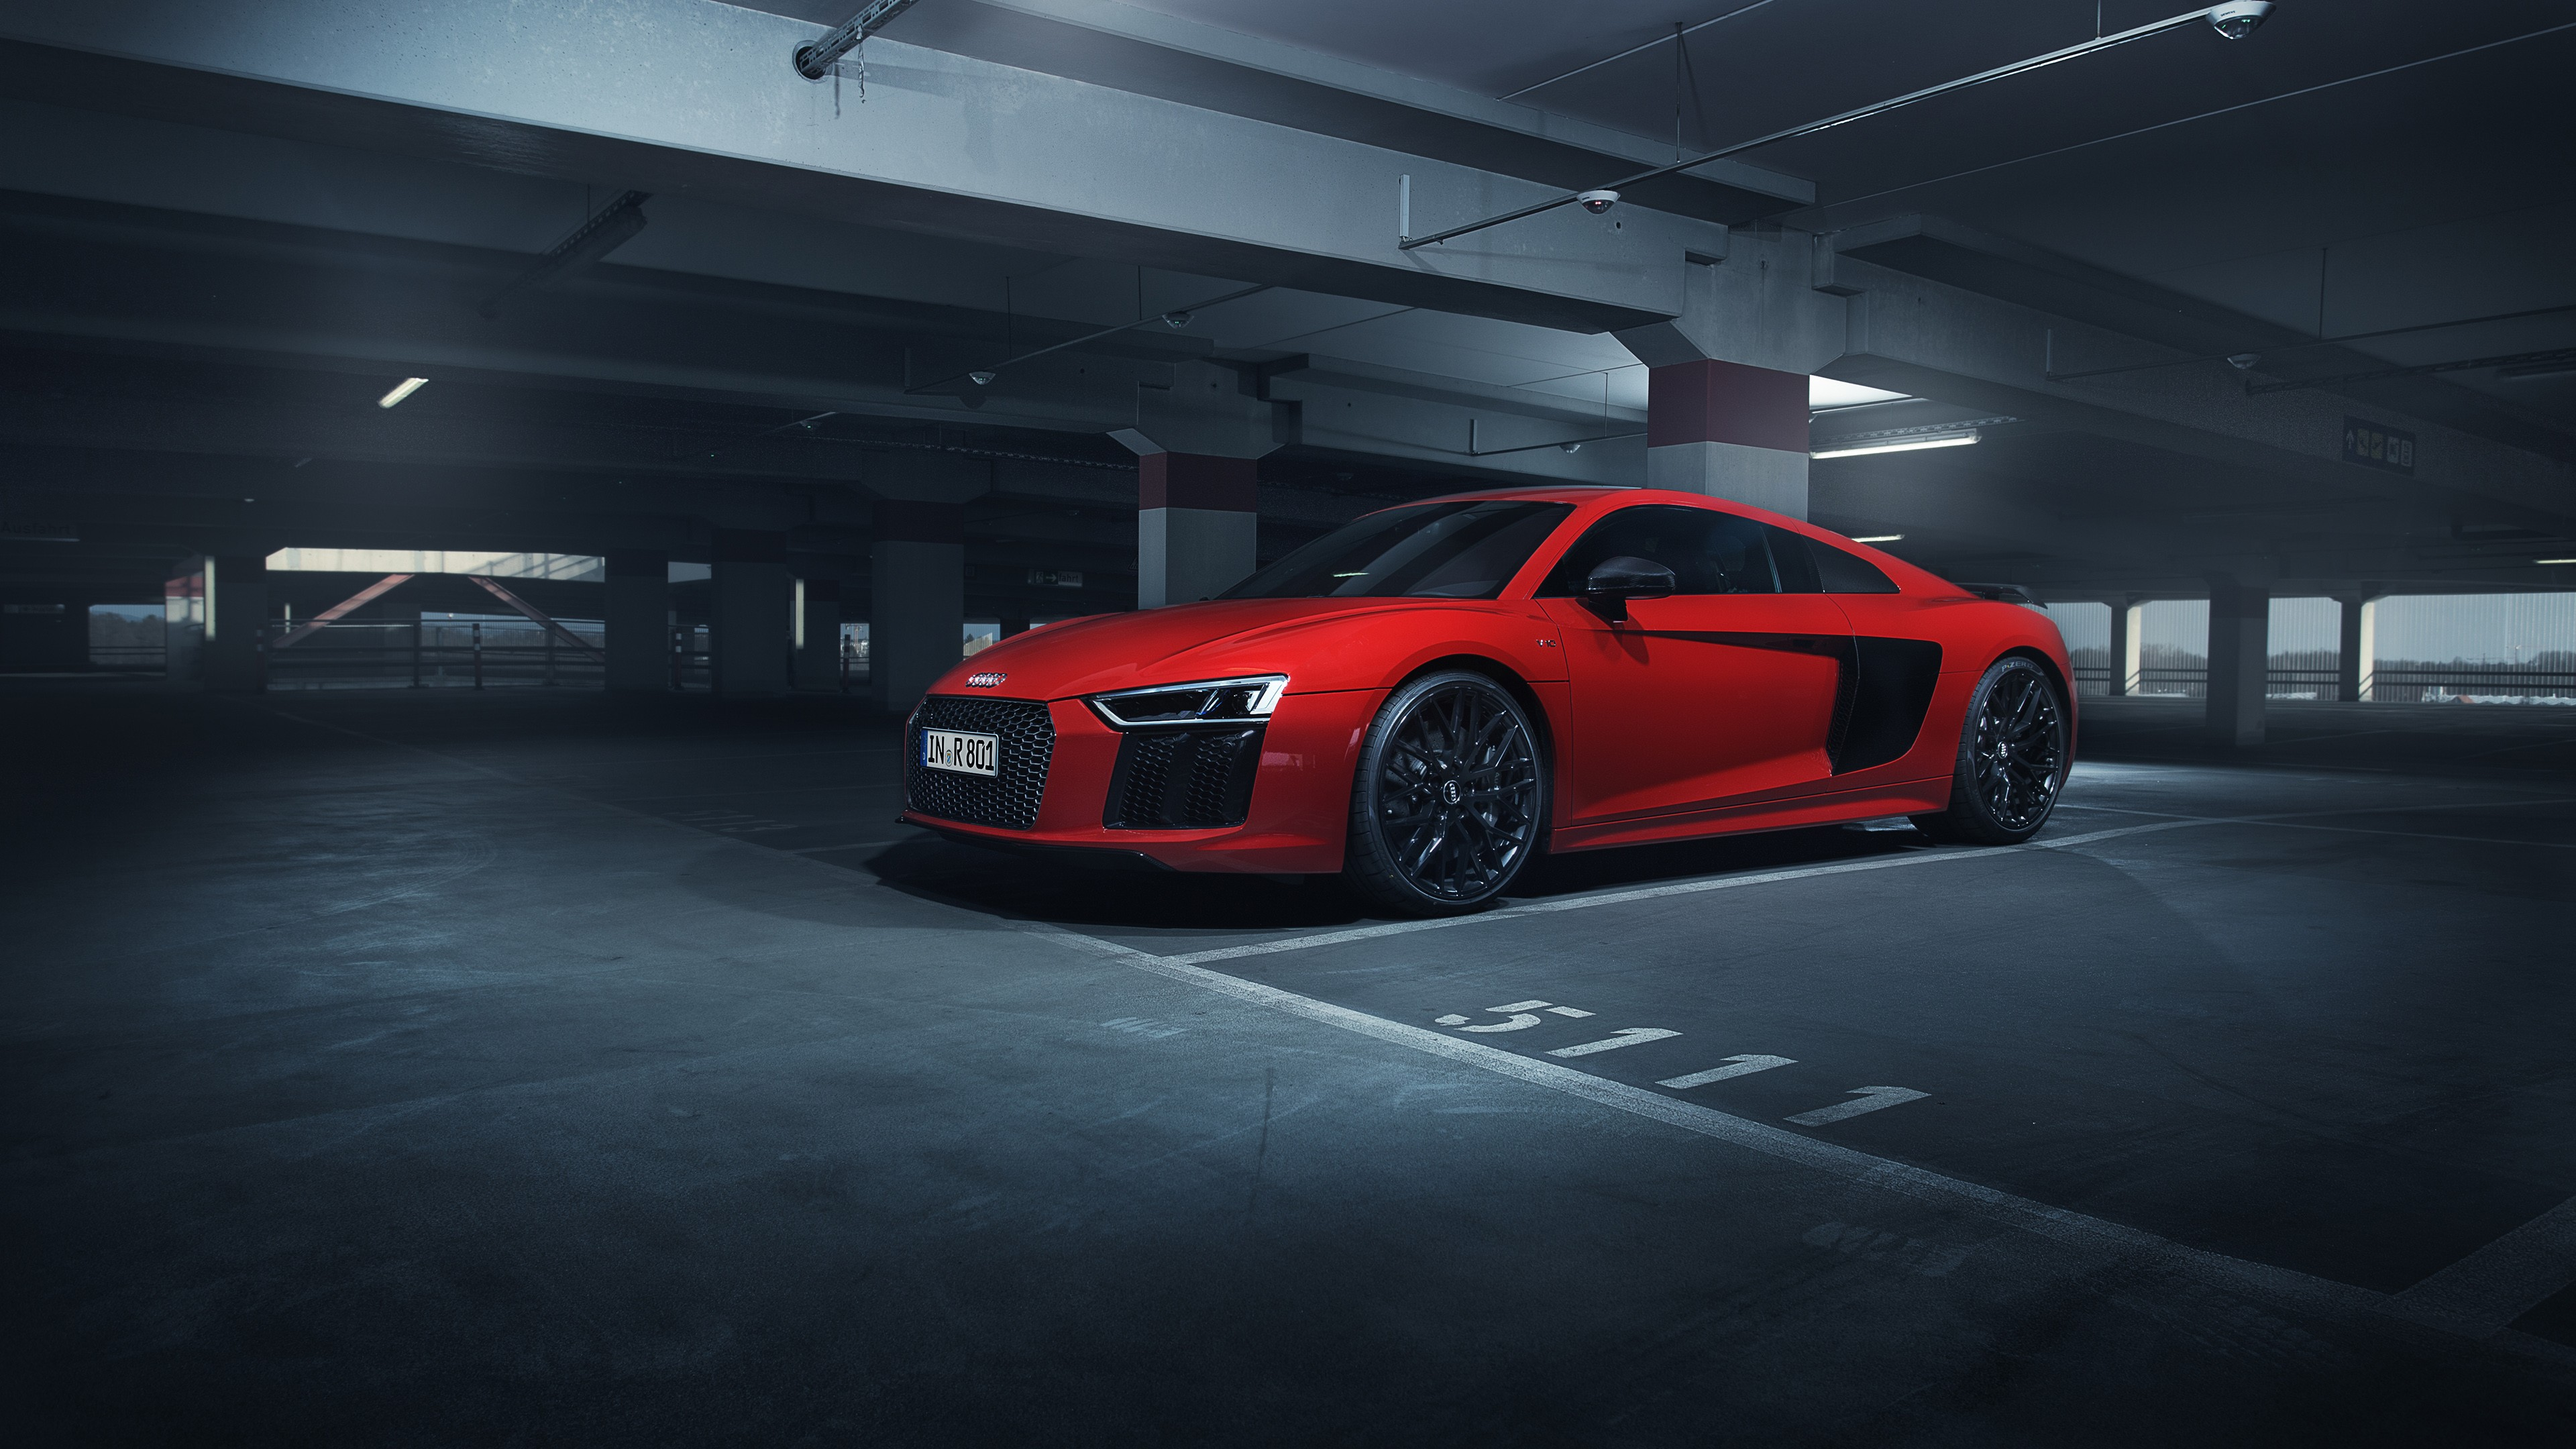 Audi R8 V10 Plus 4k Wallpaper Hd Car Wallpapers Id 10996